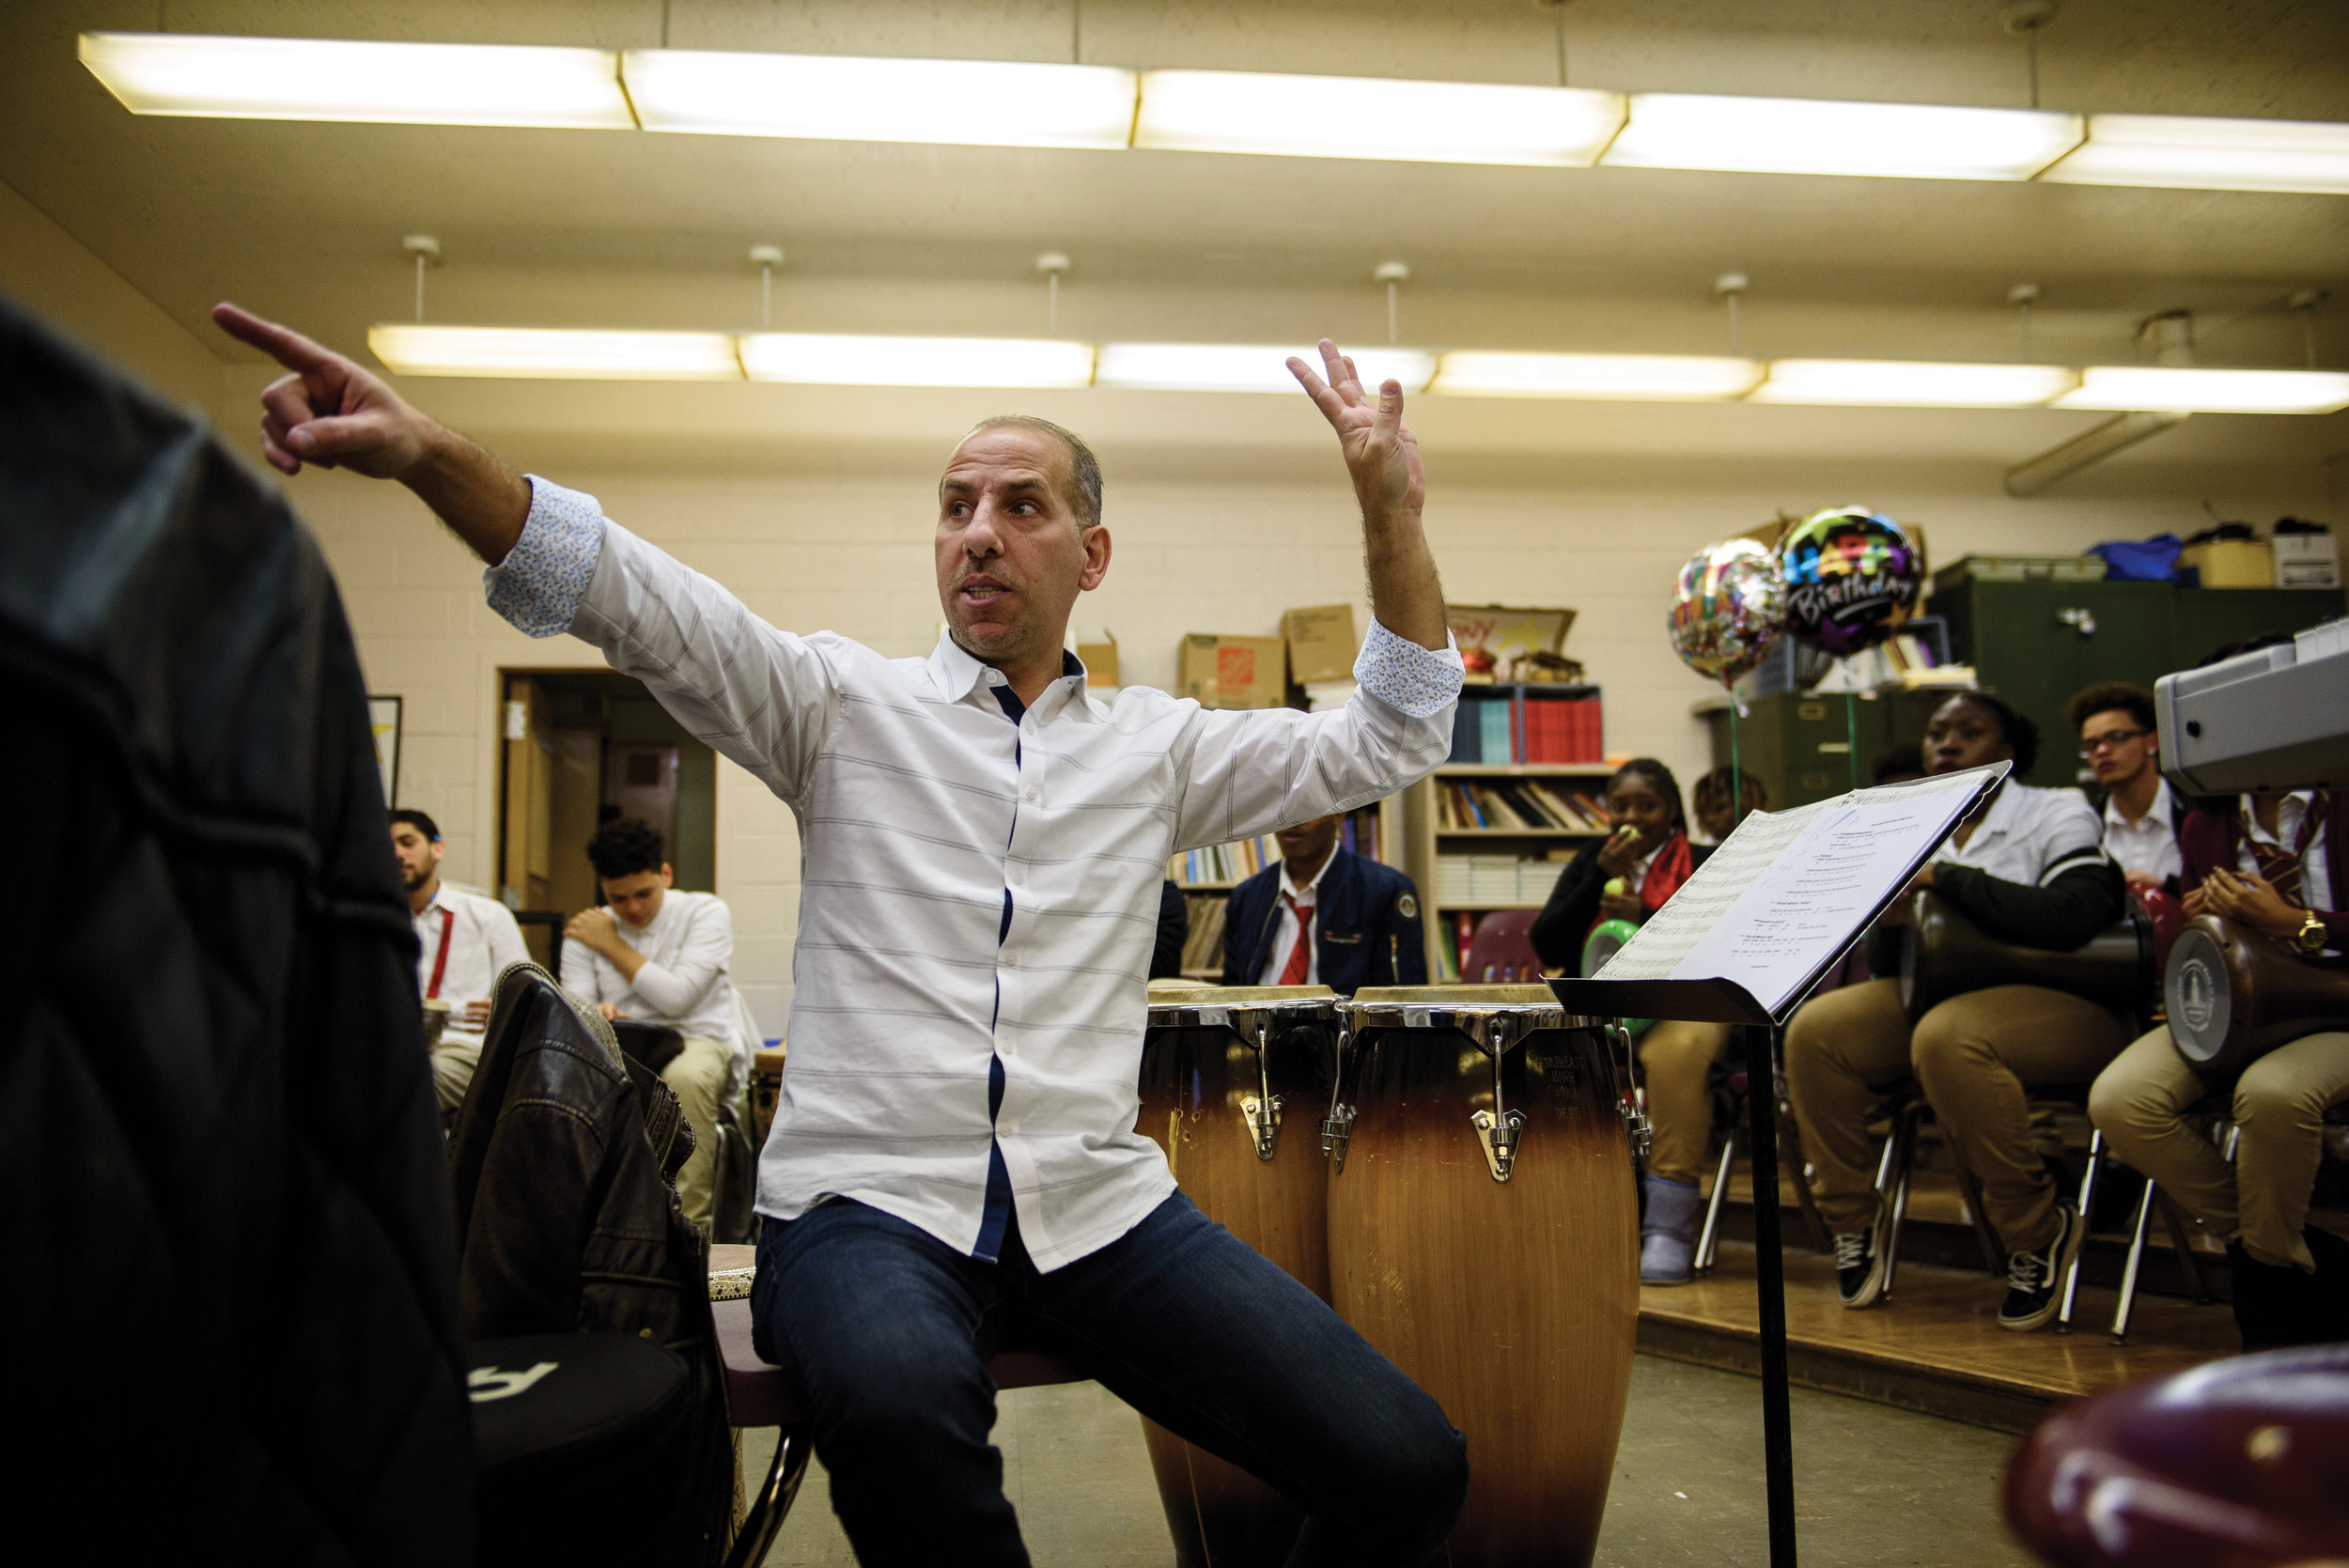 Hafez Kotain instructing a drum class at Northeast High School